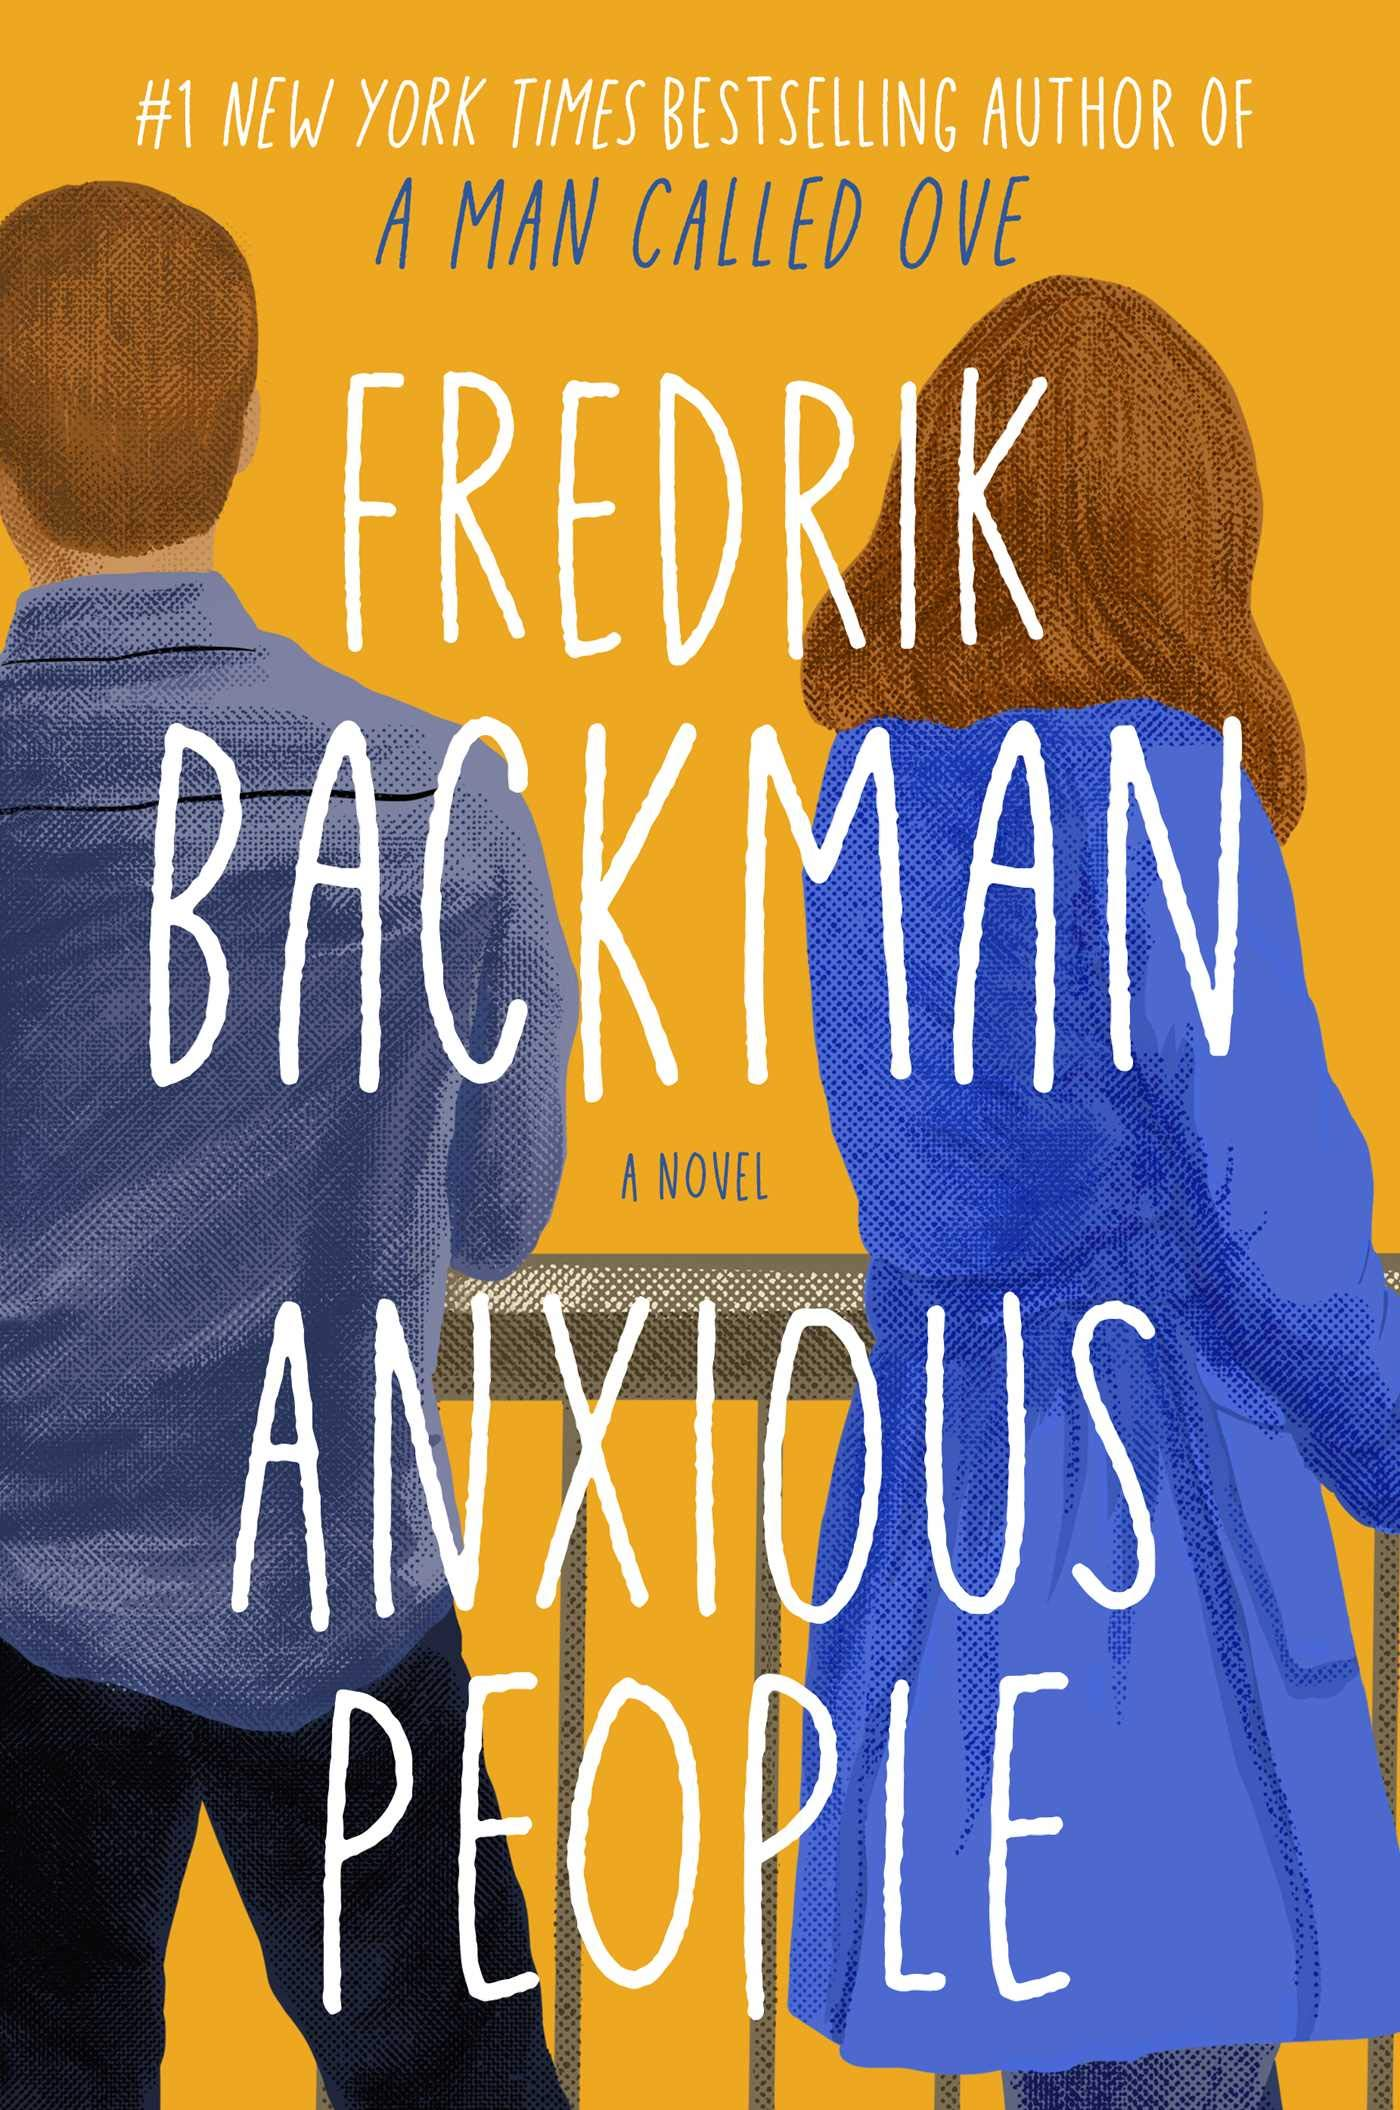 Cover image of Anxious People by Fredrik Backman